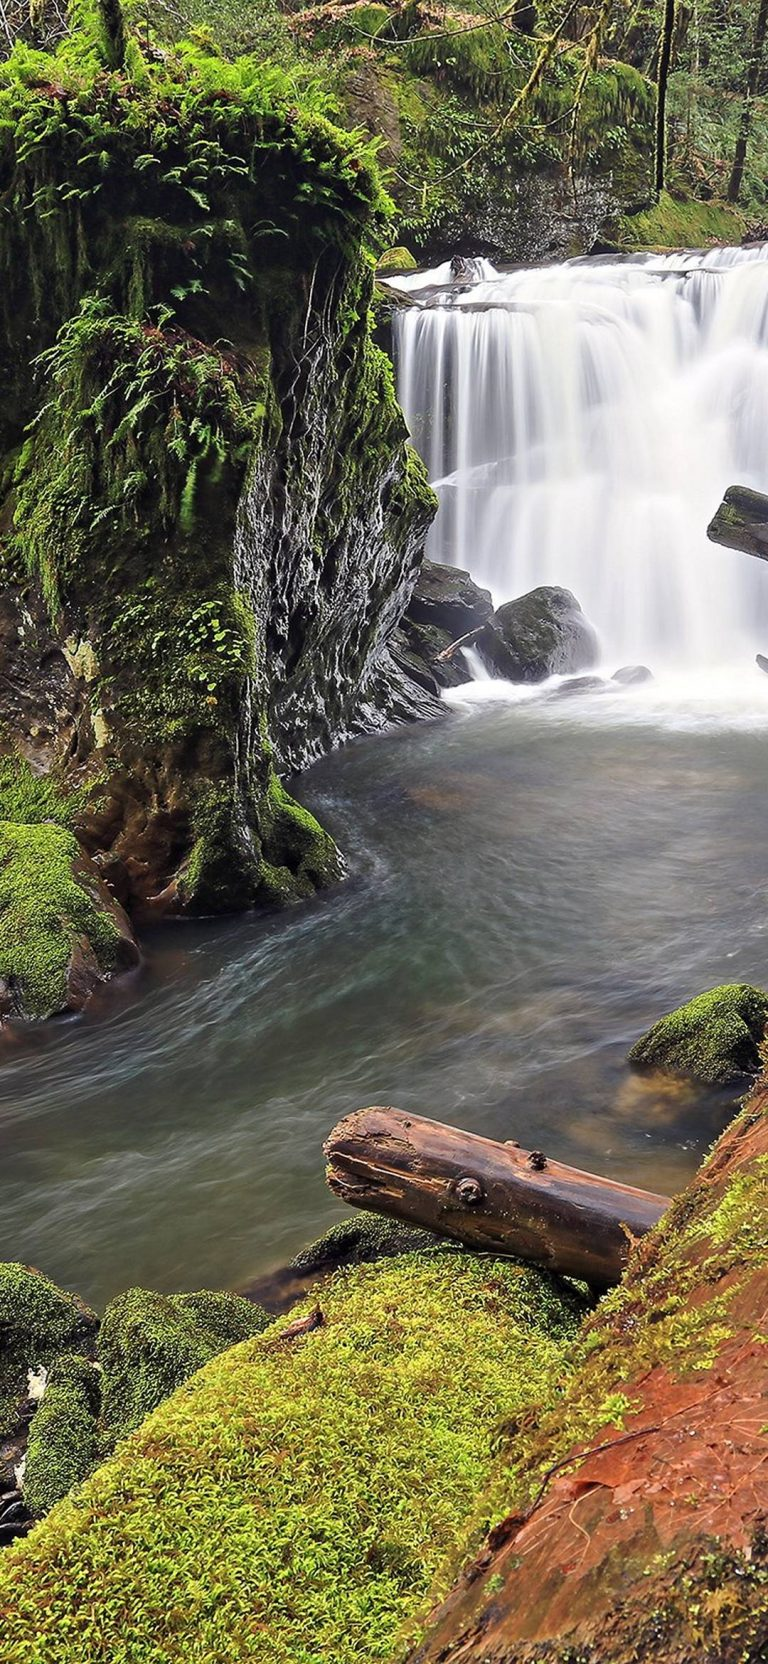 Forest River Waterfall Log Moss Rocks 1080x2340 768x1664